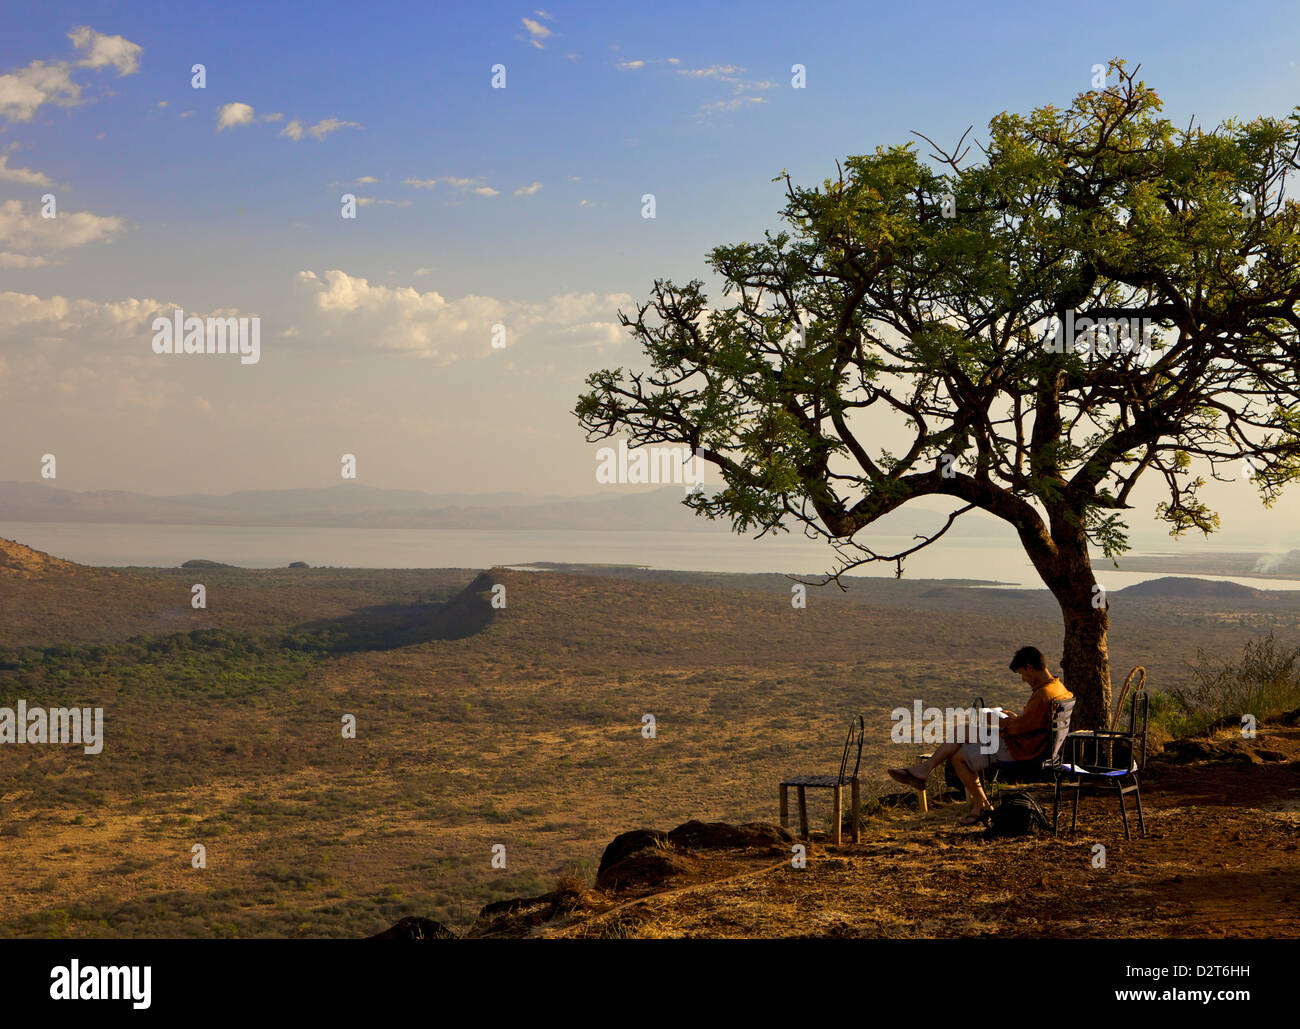 Overlooking the lower grasslands of Ethiopia's Nechisar National Park, Ethiopia, Africa Stock Photo